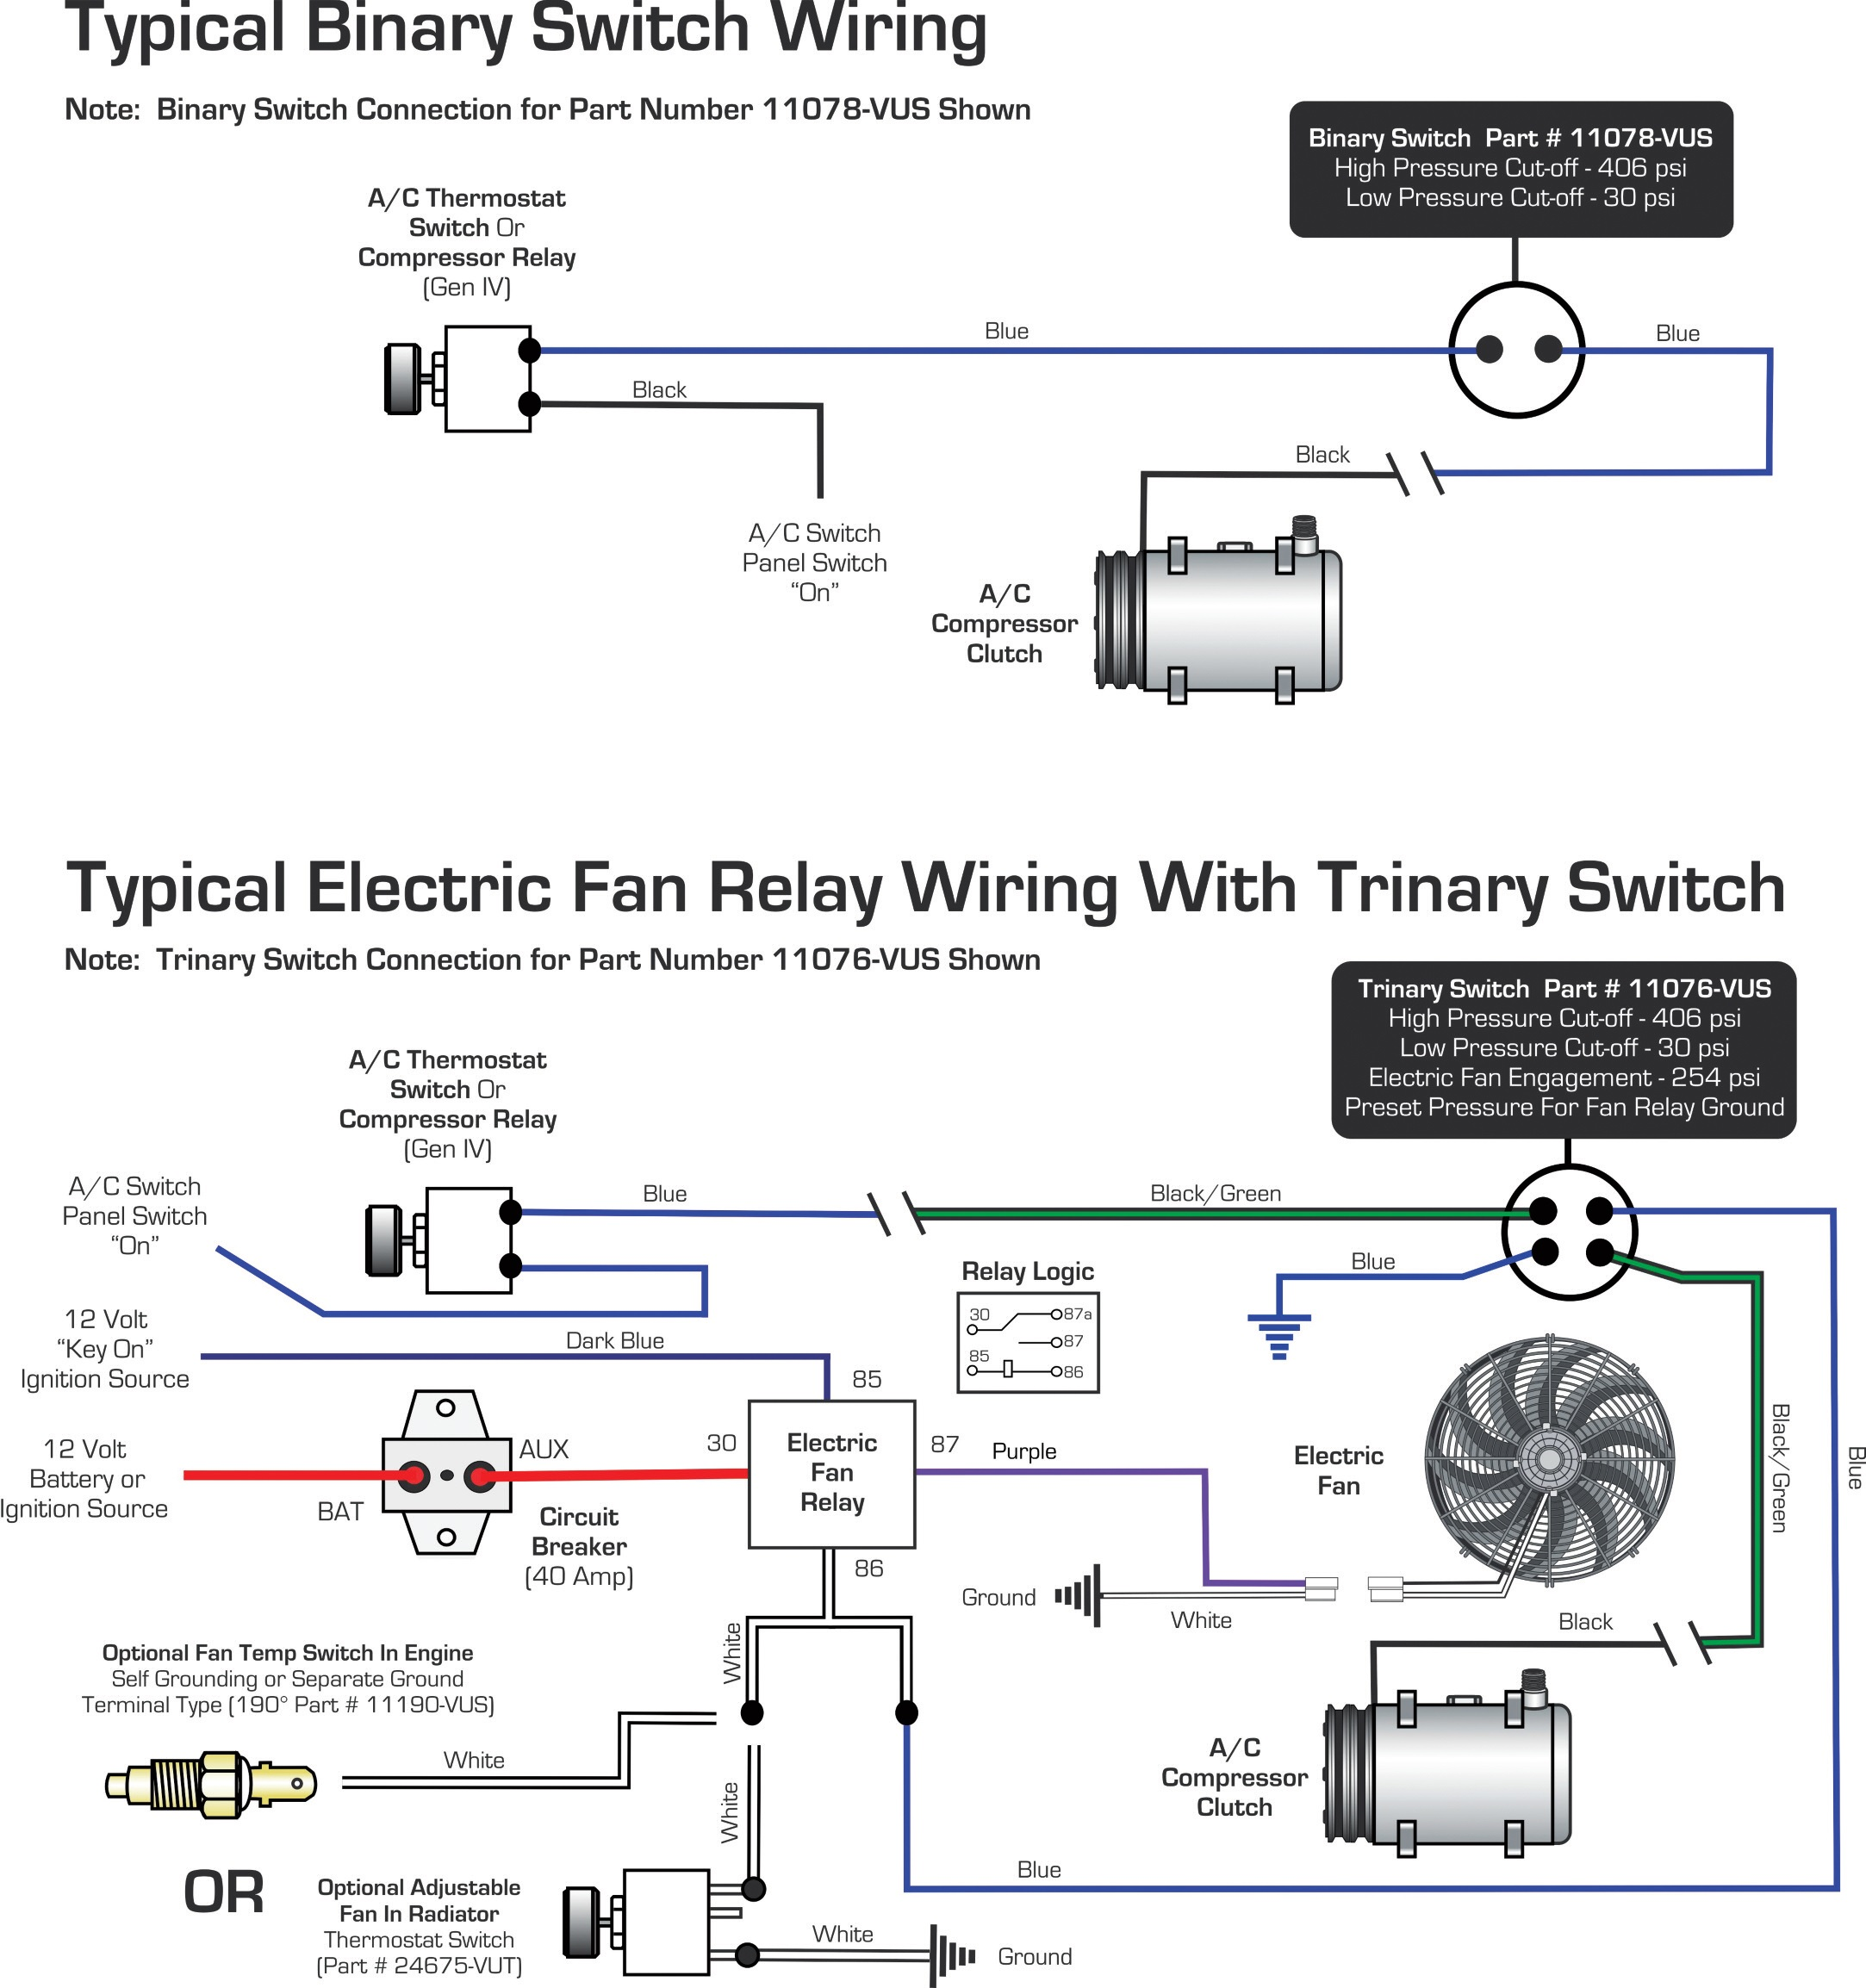 vintage air blog archive wiring diagrams binary switch trinary rh vintageair com Air Conditioner Control Wiring Diagram Vintage Air Conditioning Wiring Diagram